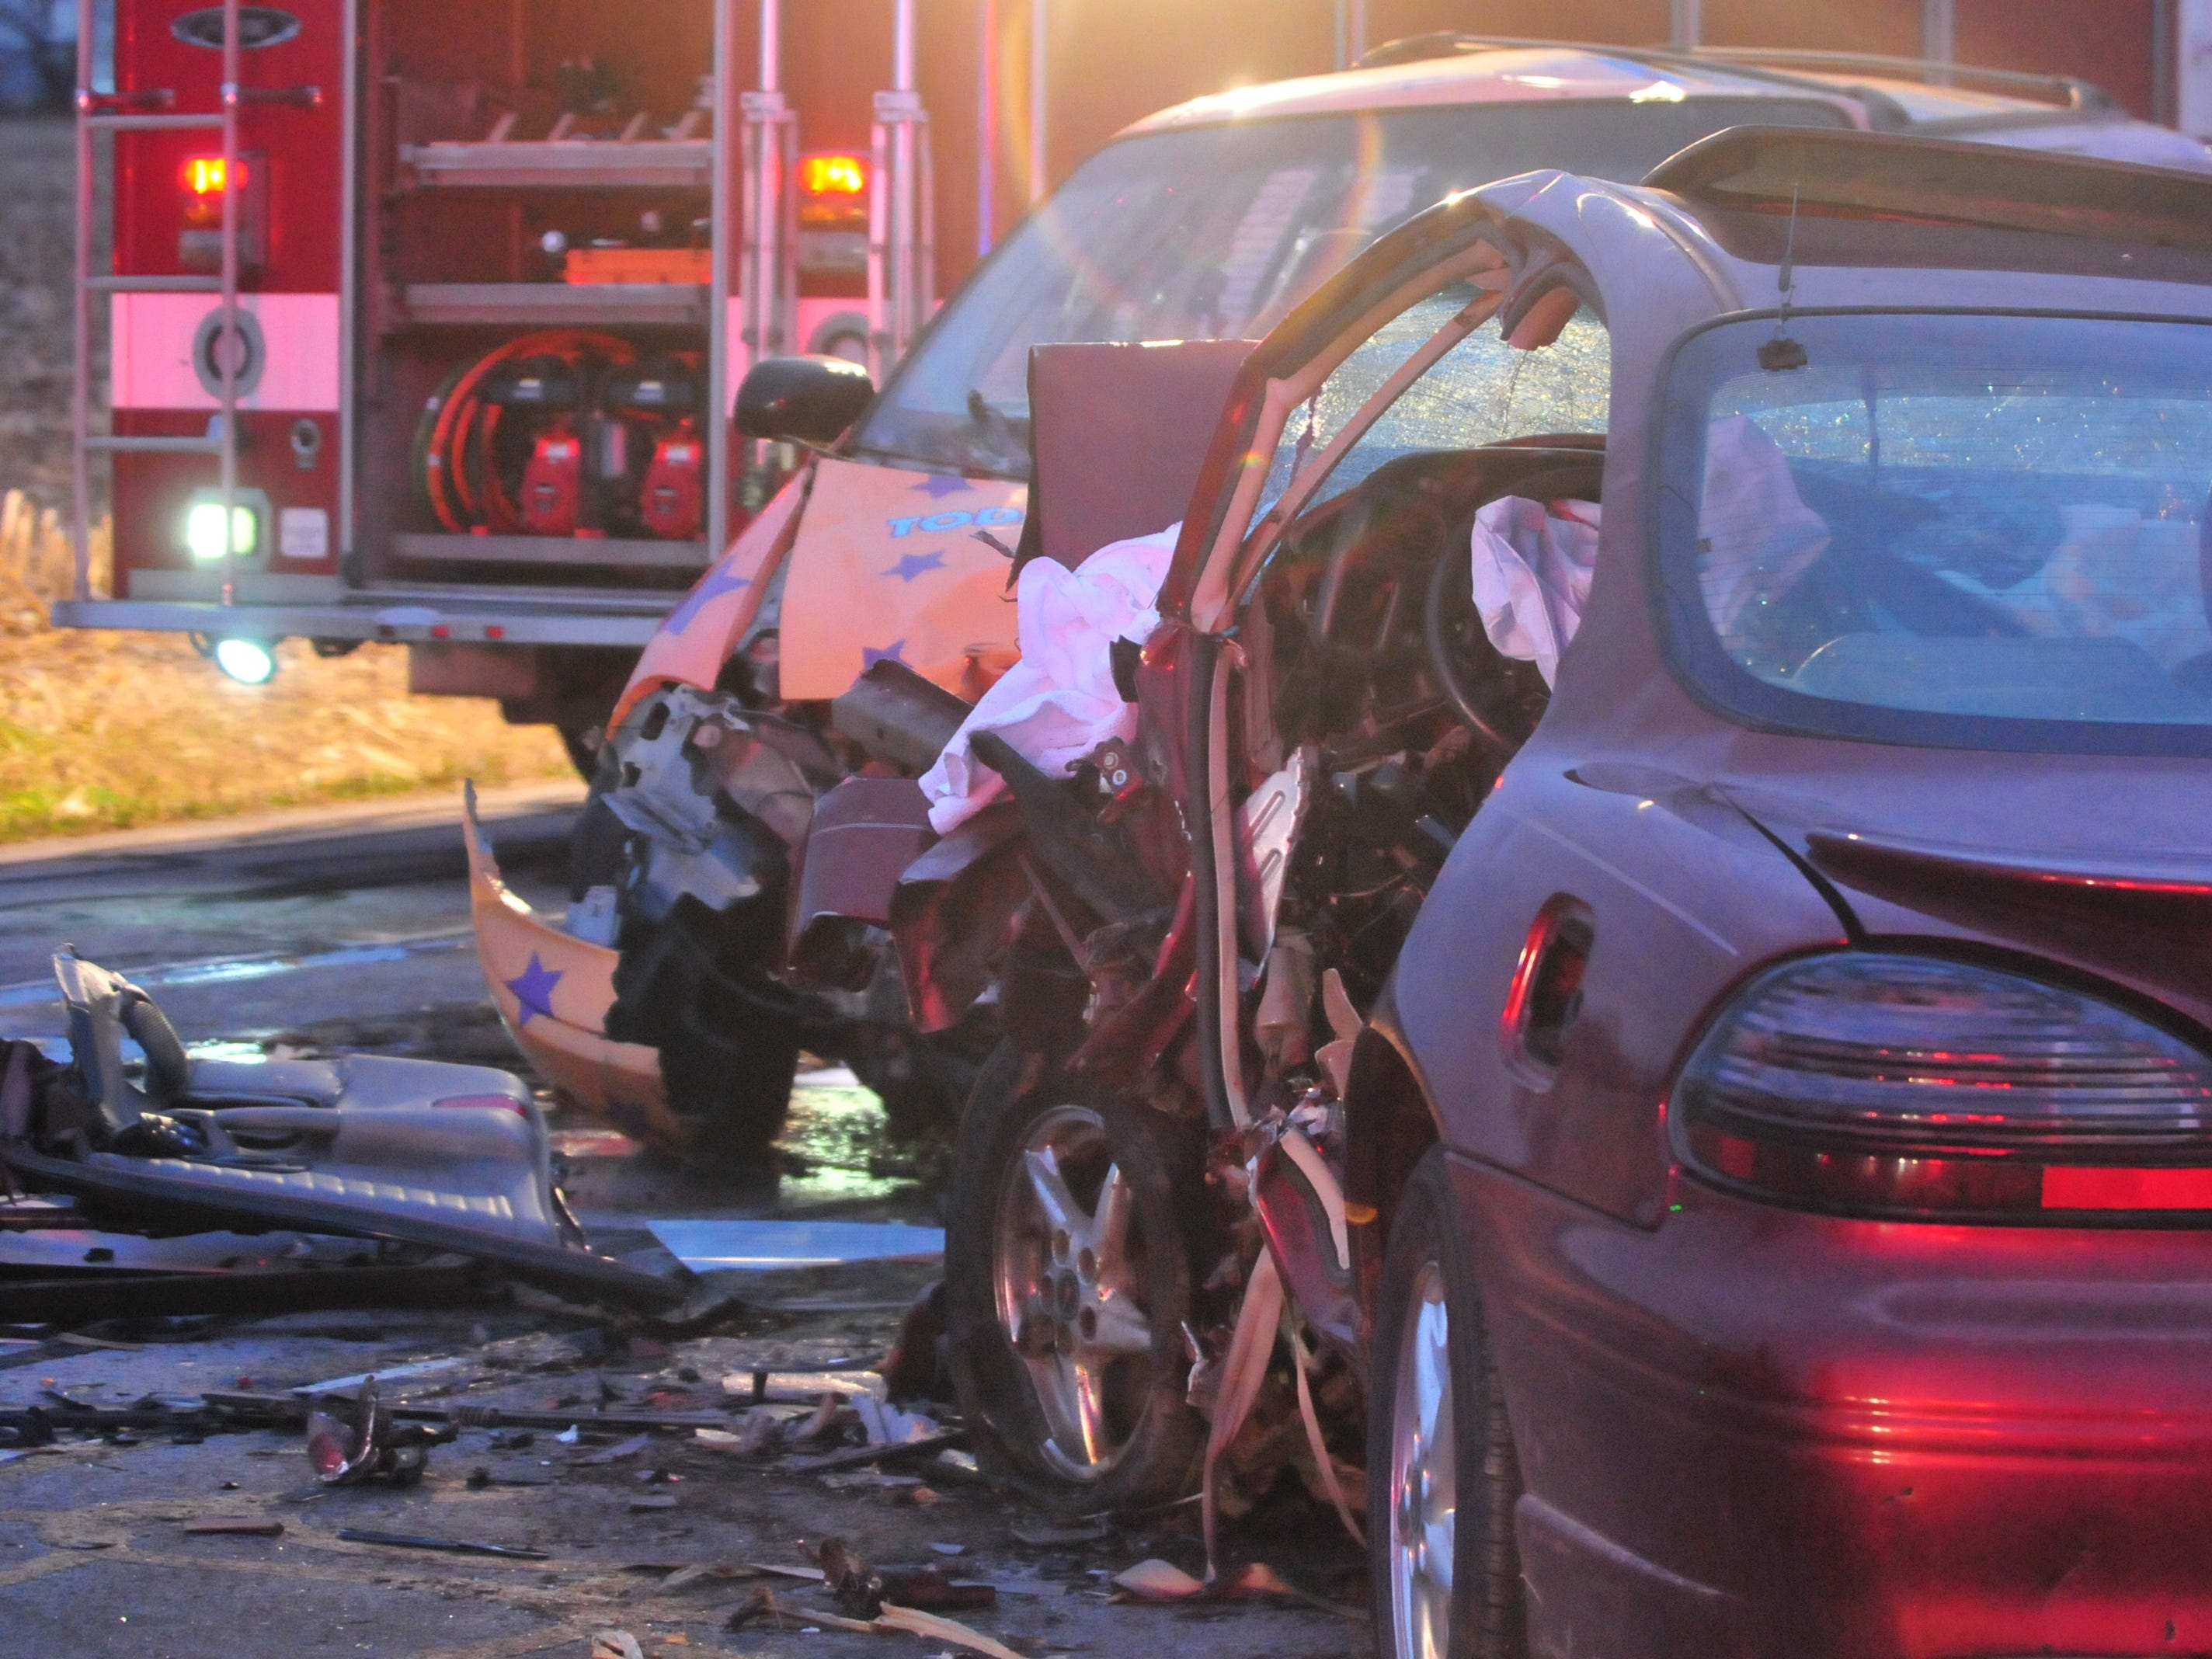 A Pontiac Grand Prix and a Ford van were involved in an accident Tuesday on Salisbury Road just north of Rich Road.